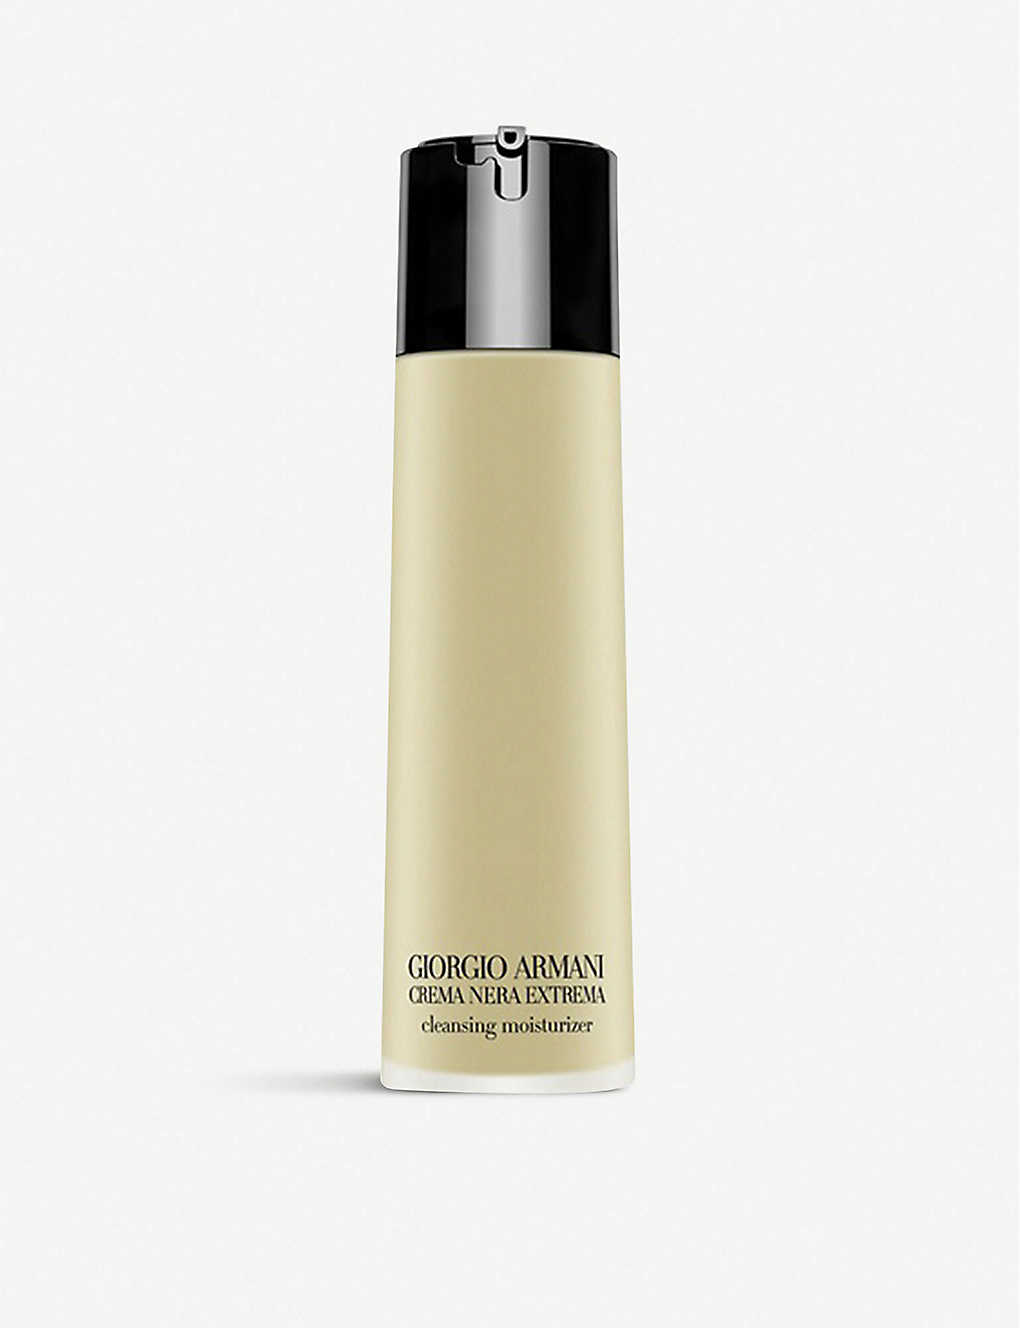 GIORGIO ARMANI: Crema Nera Extrema gel in oil cleanser 150ml